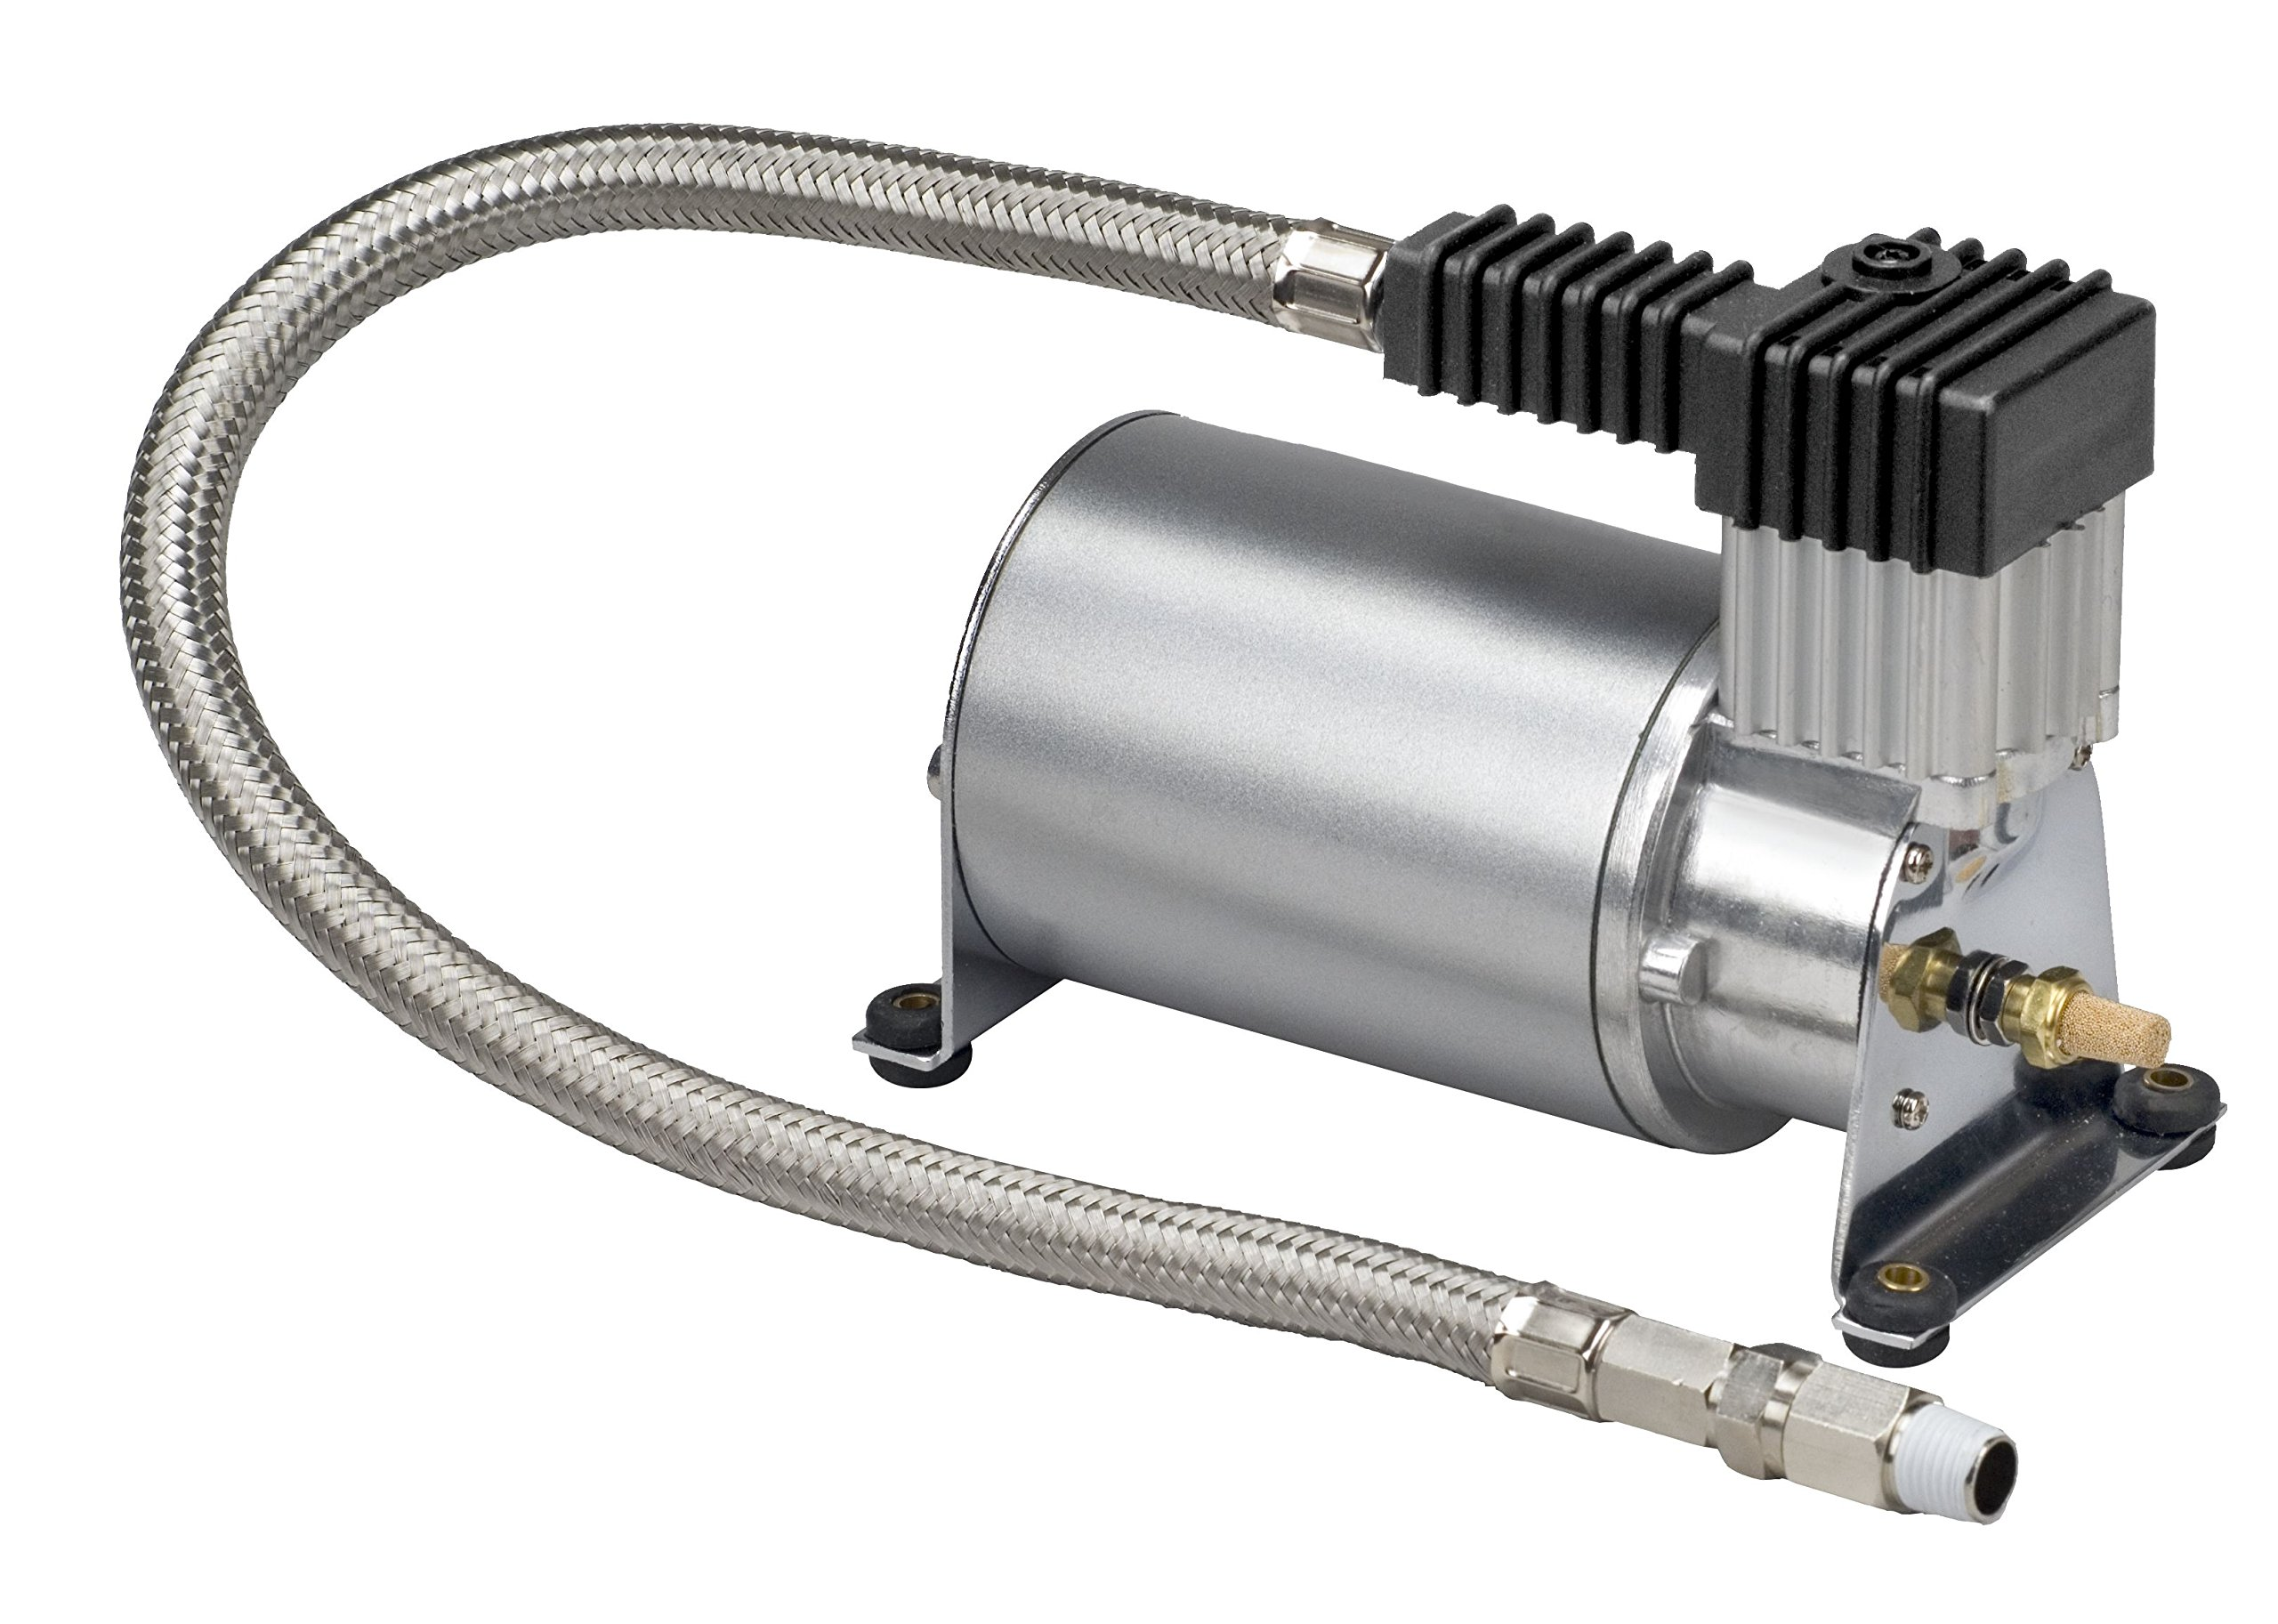 Wolo 840-C for Train Horns and High Volume Output